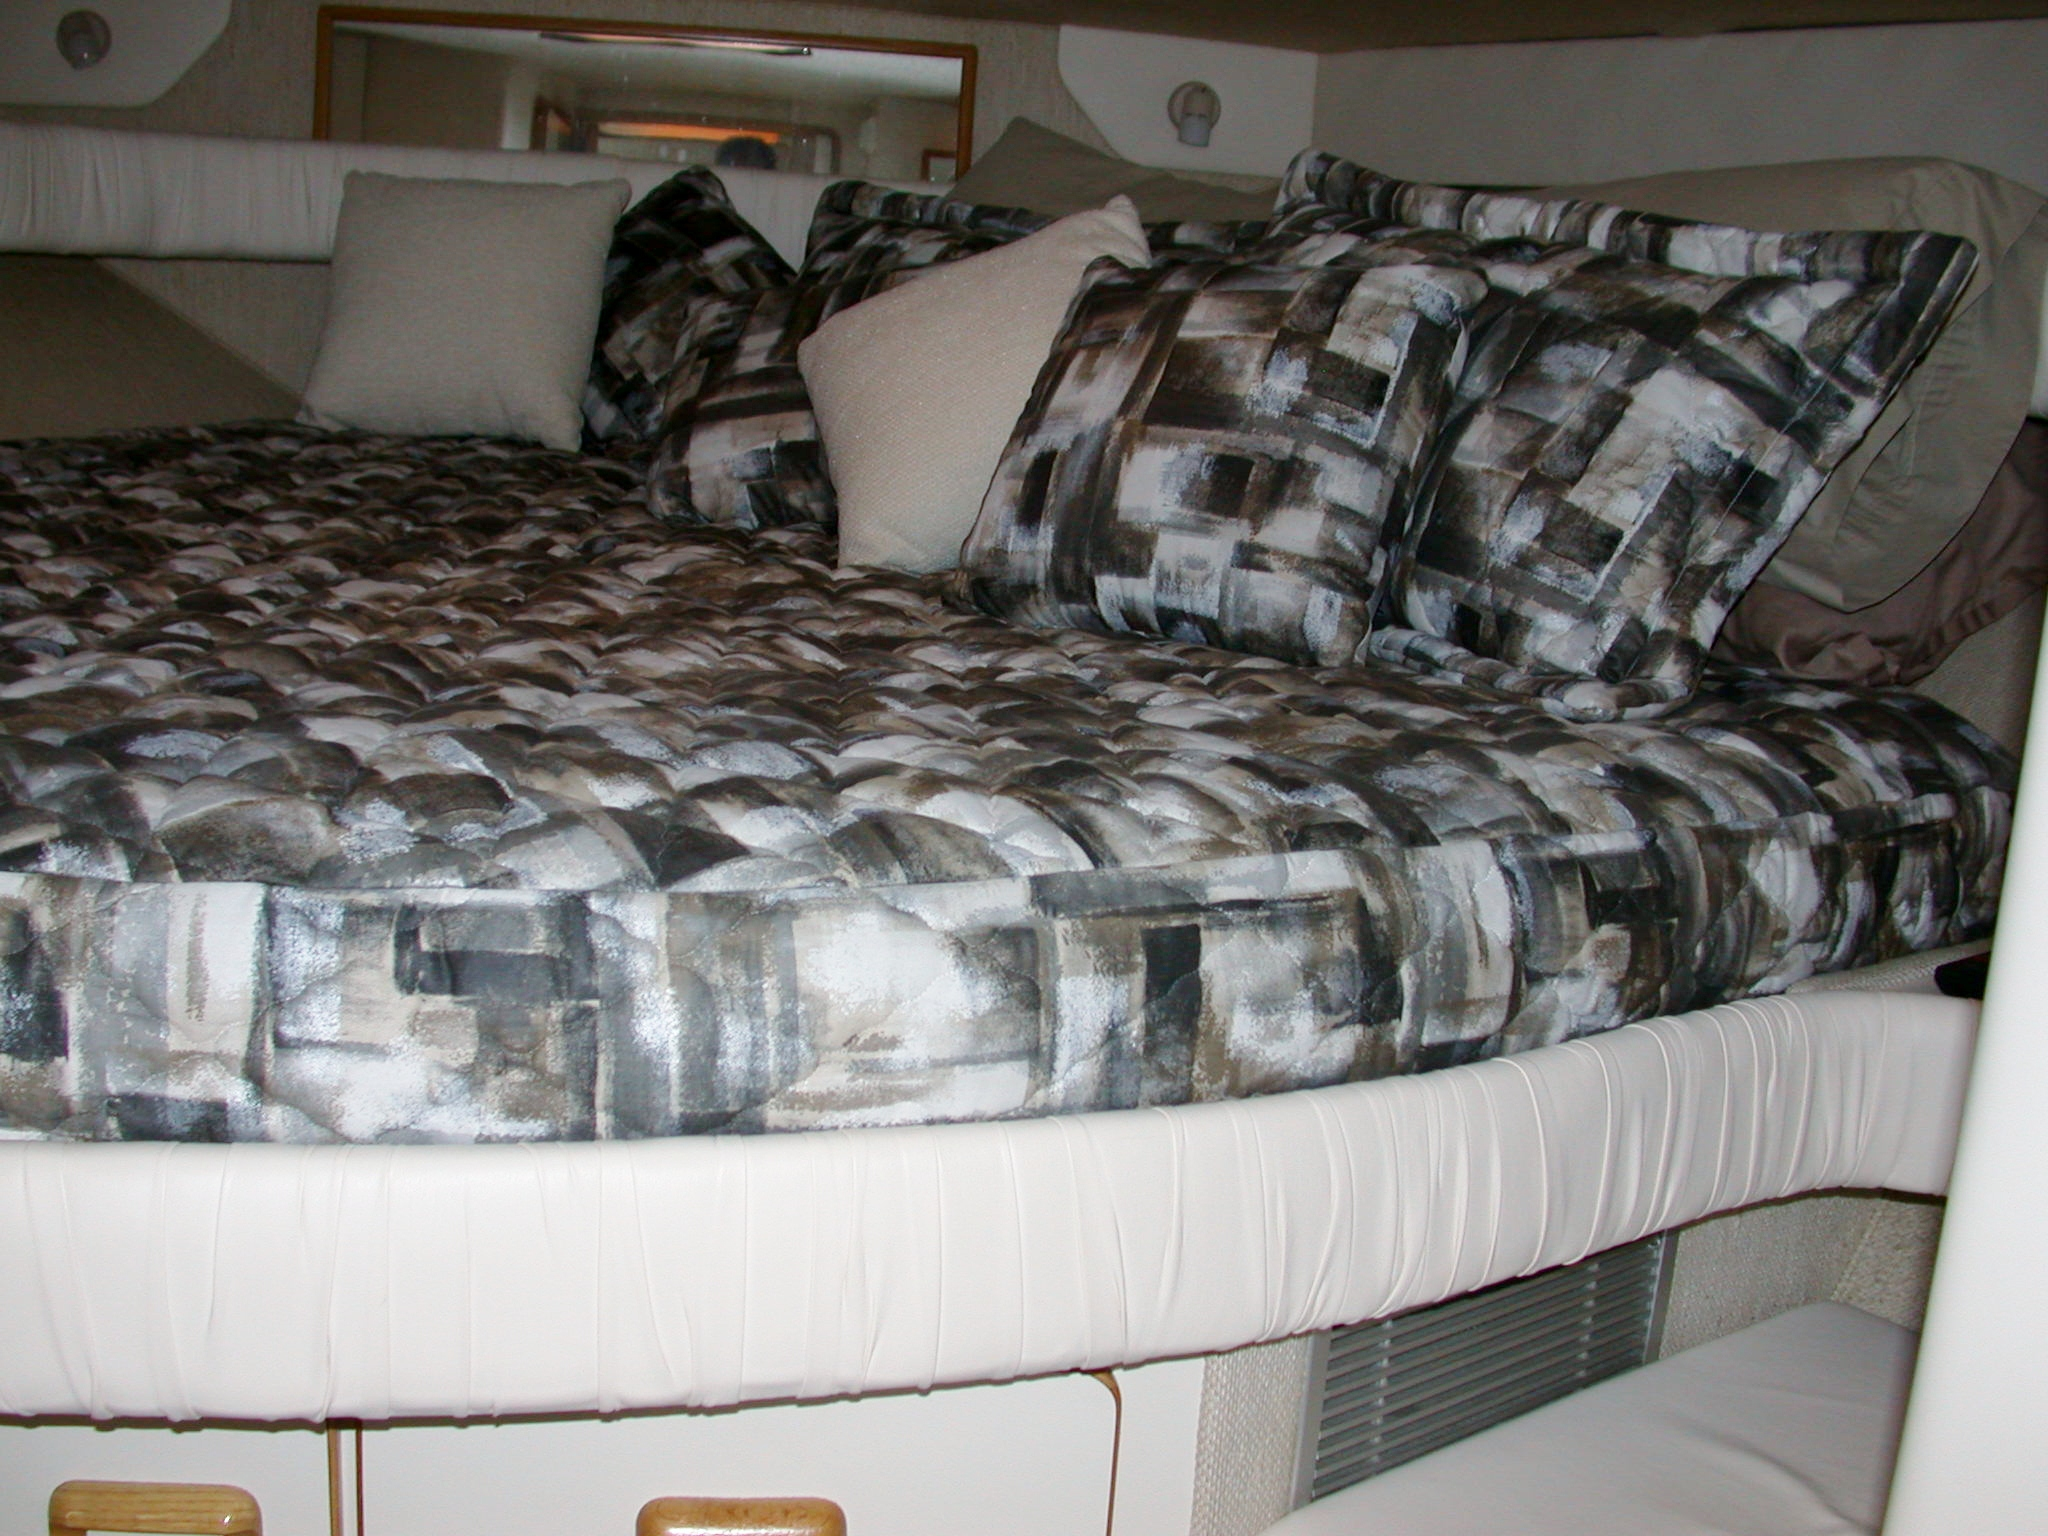 Custom Marine Interiors, Upholstery, and Carpeting: 440 Sea Ray Sundancer forward cabin with custom bedspread and pillow shams